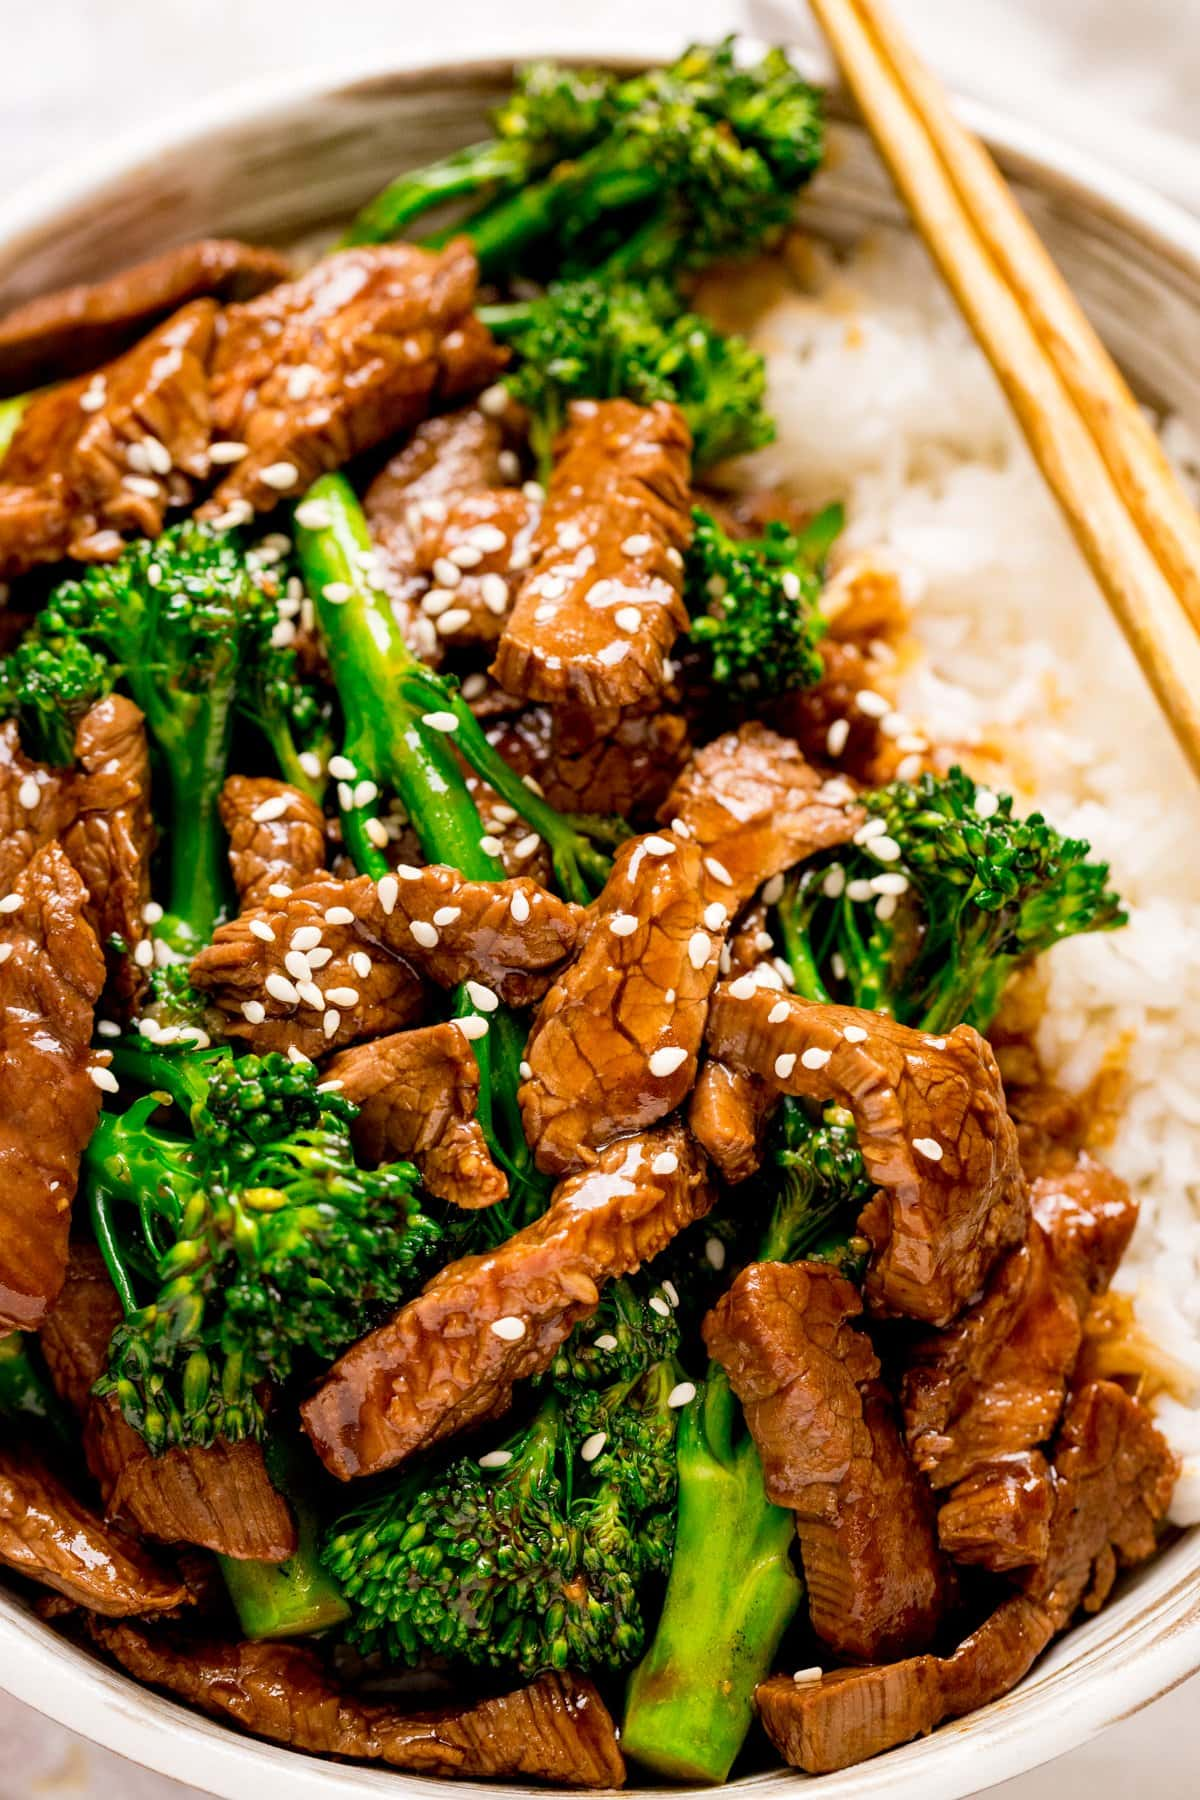 beef and broccoli topped with sesame seeds in a bowl with rice. Chopsticks resting on bowl.